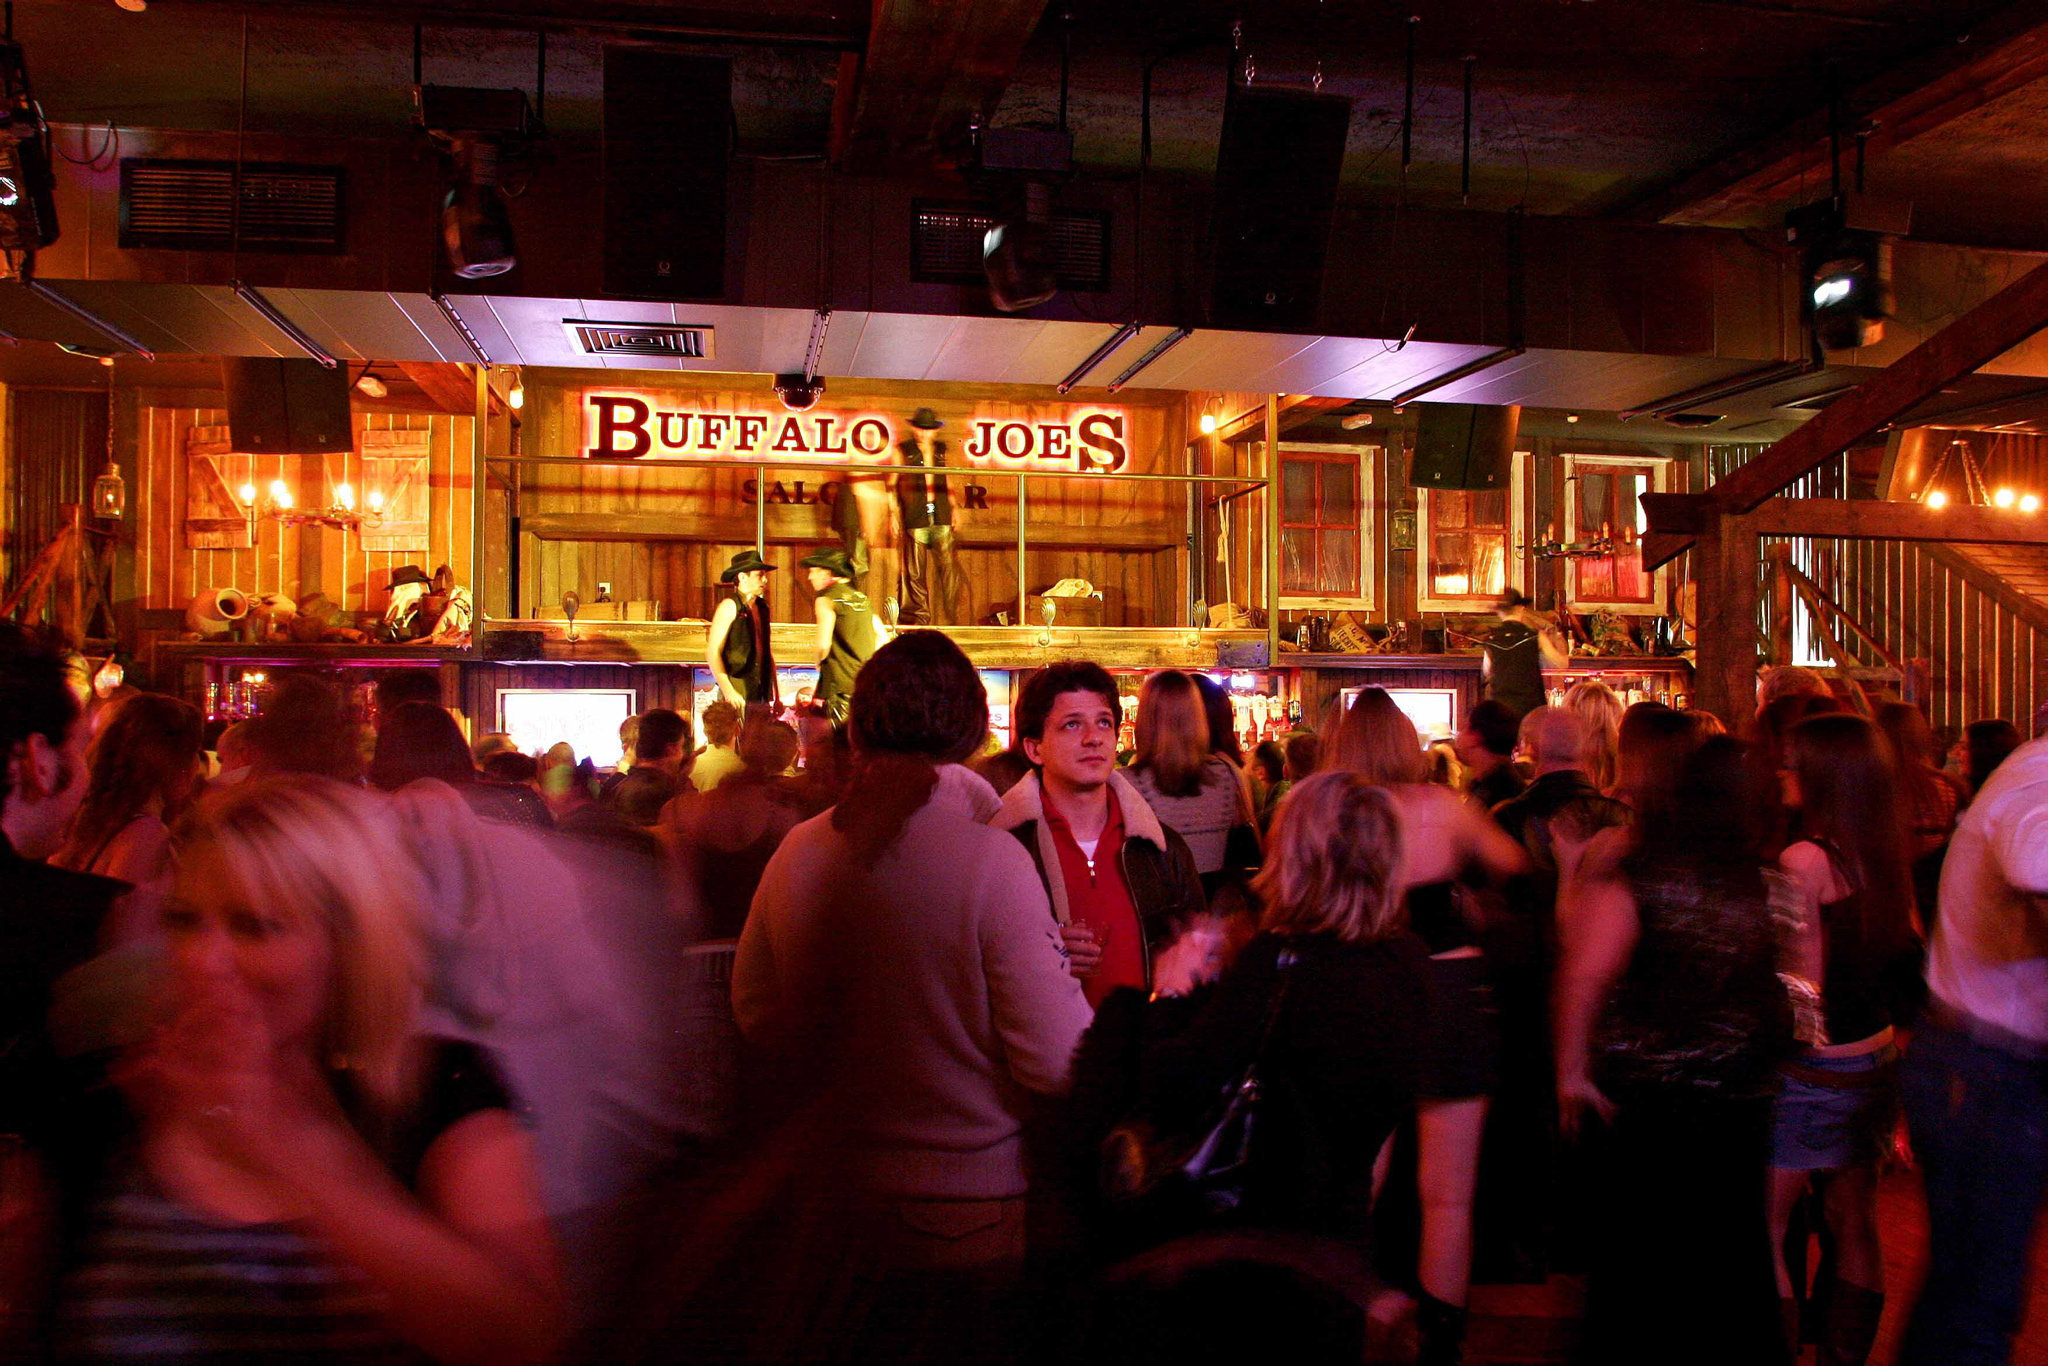 Bar, pubs and clubs could reap dividends by opening longer, say Barclays